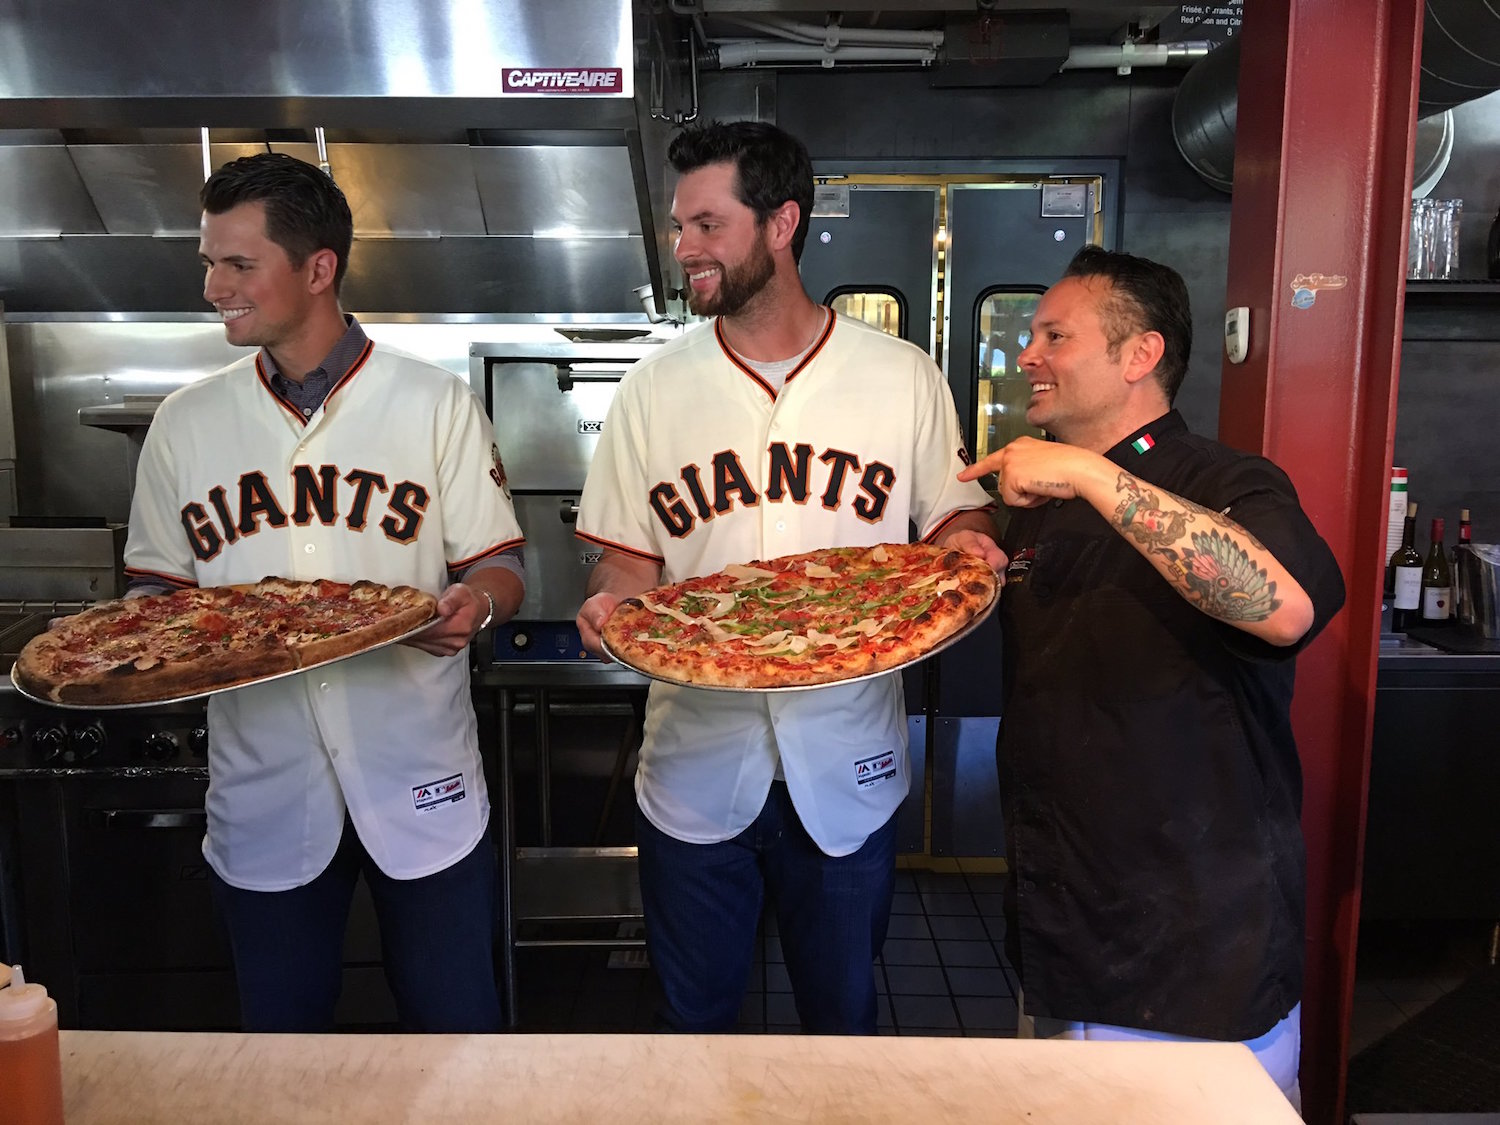 Joe Panik, Brandon Belt, and Tony Gemignani